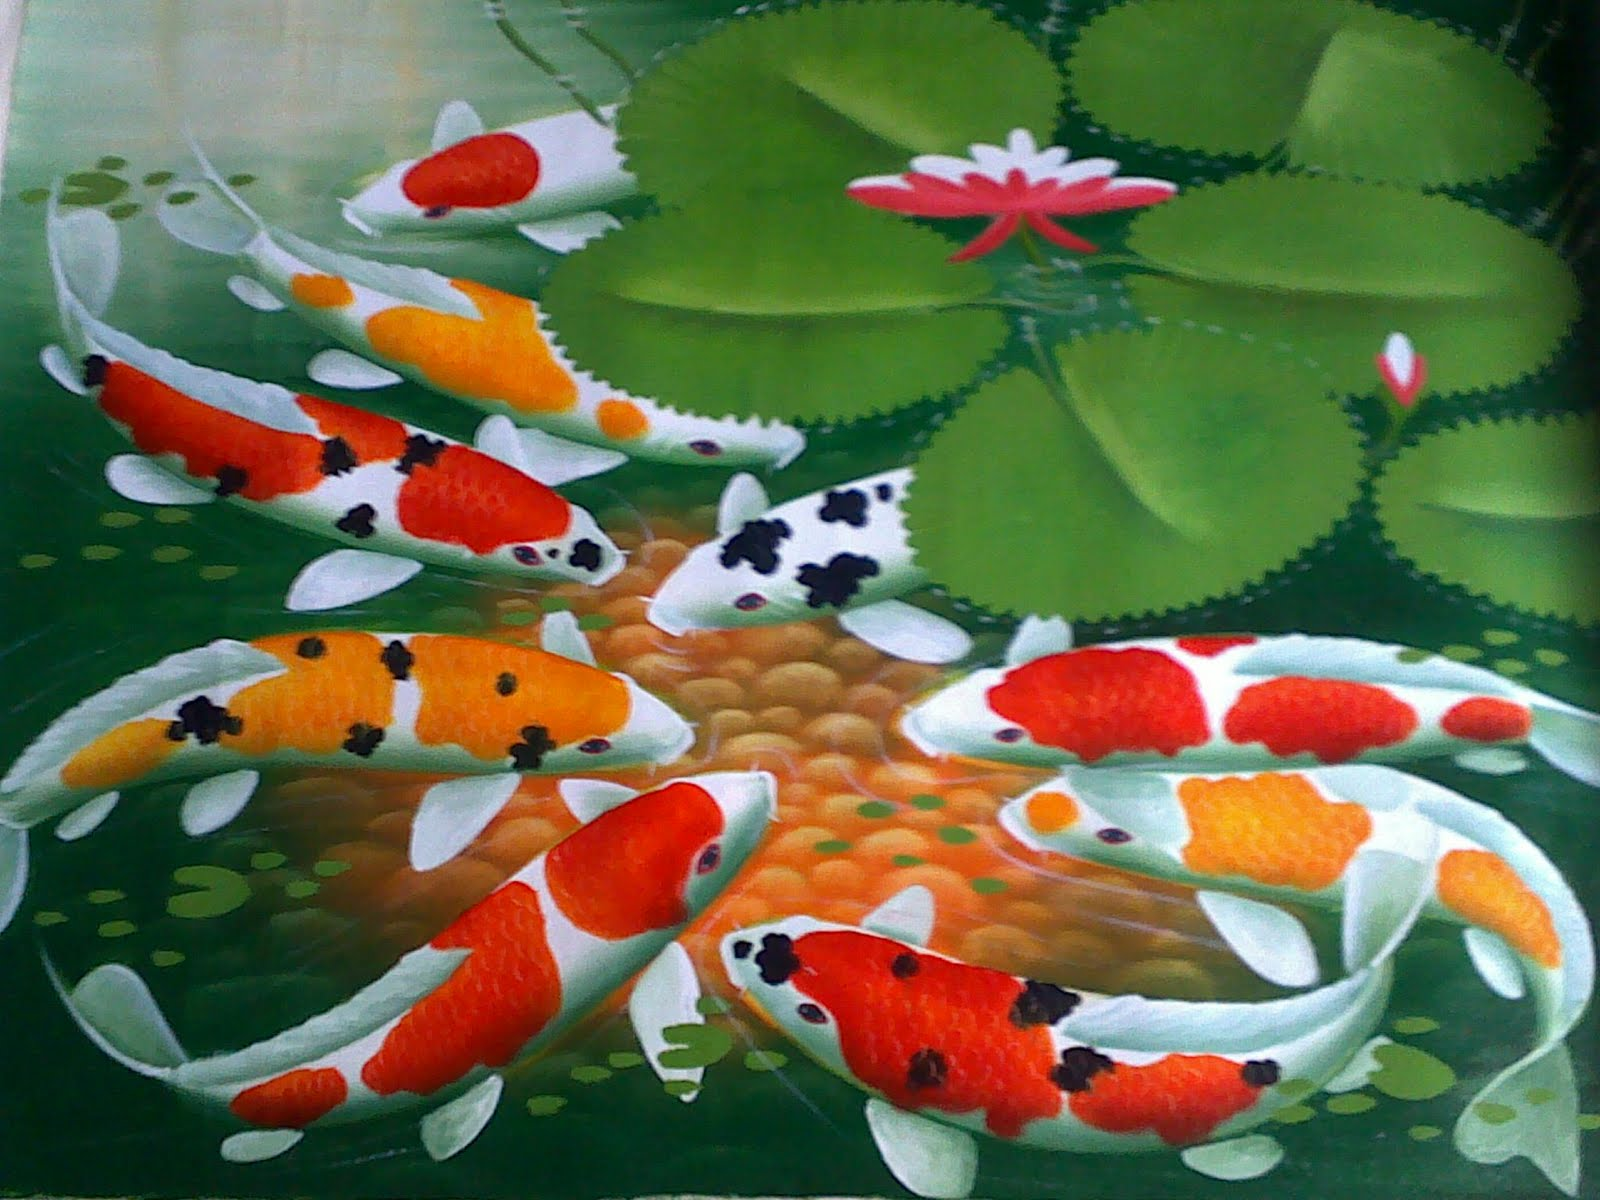 Download Wallpaper Live 3d Android Koi Wallpaper For Android Free Download Wallpaper